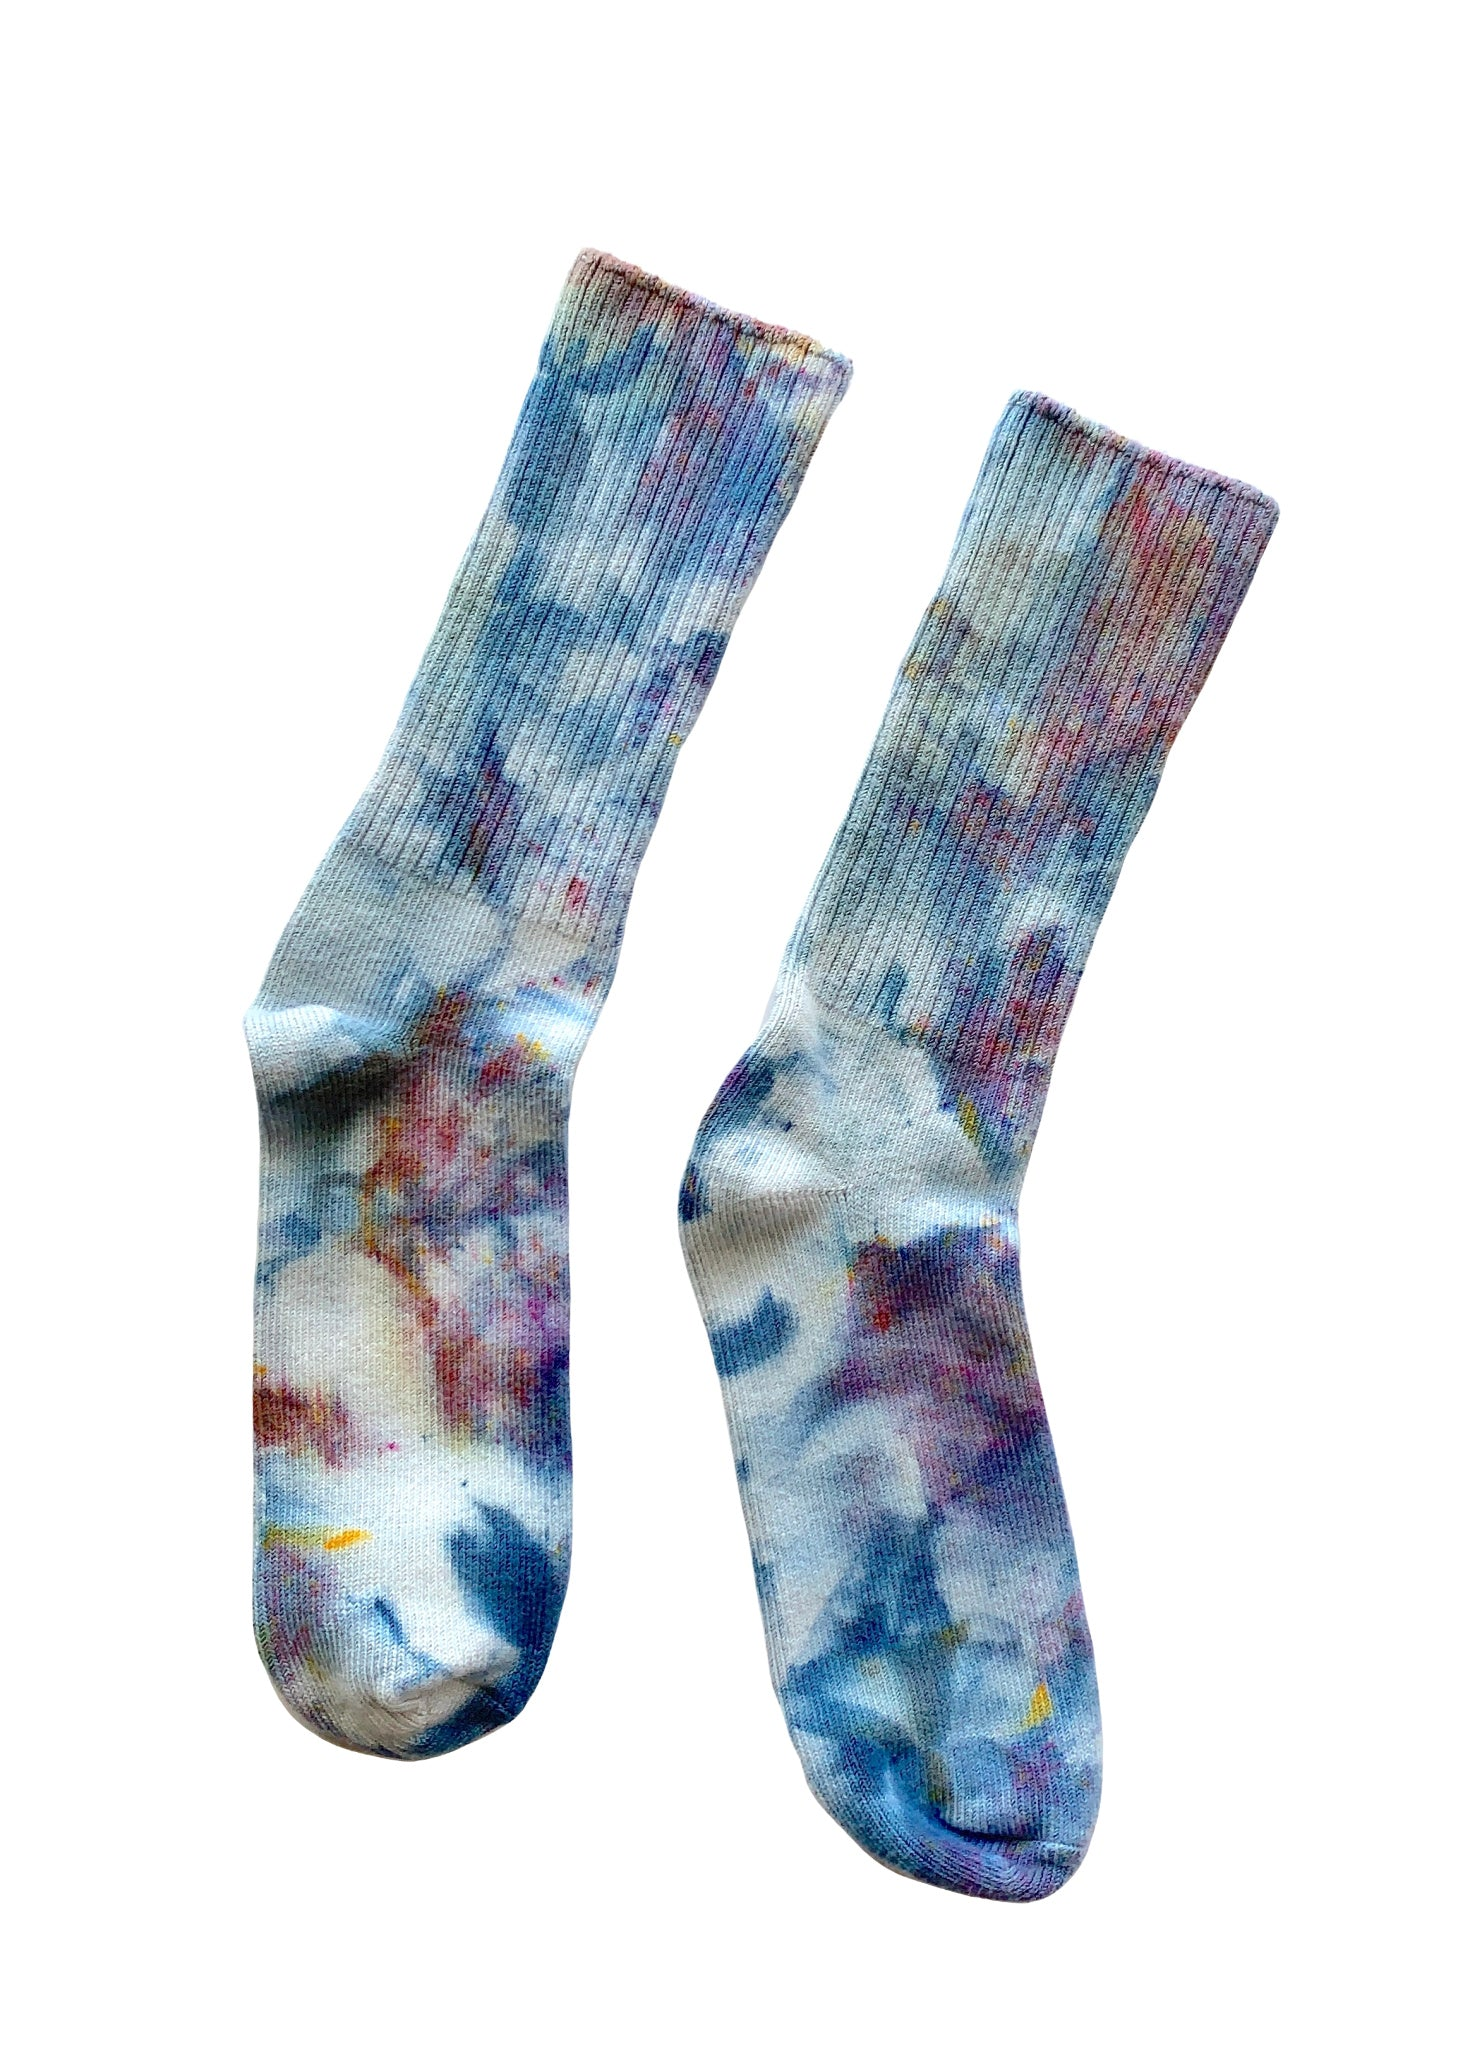 Bamboo Rayon Crew Socks - Meadow - Crew Socks - Dyetology